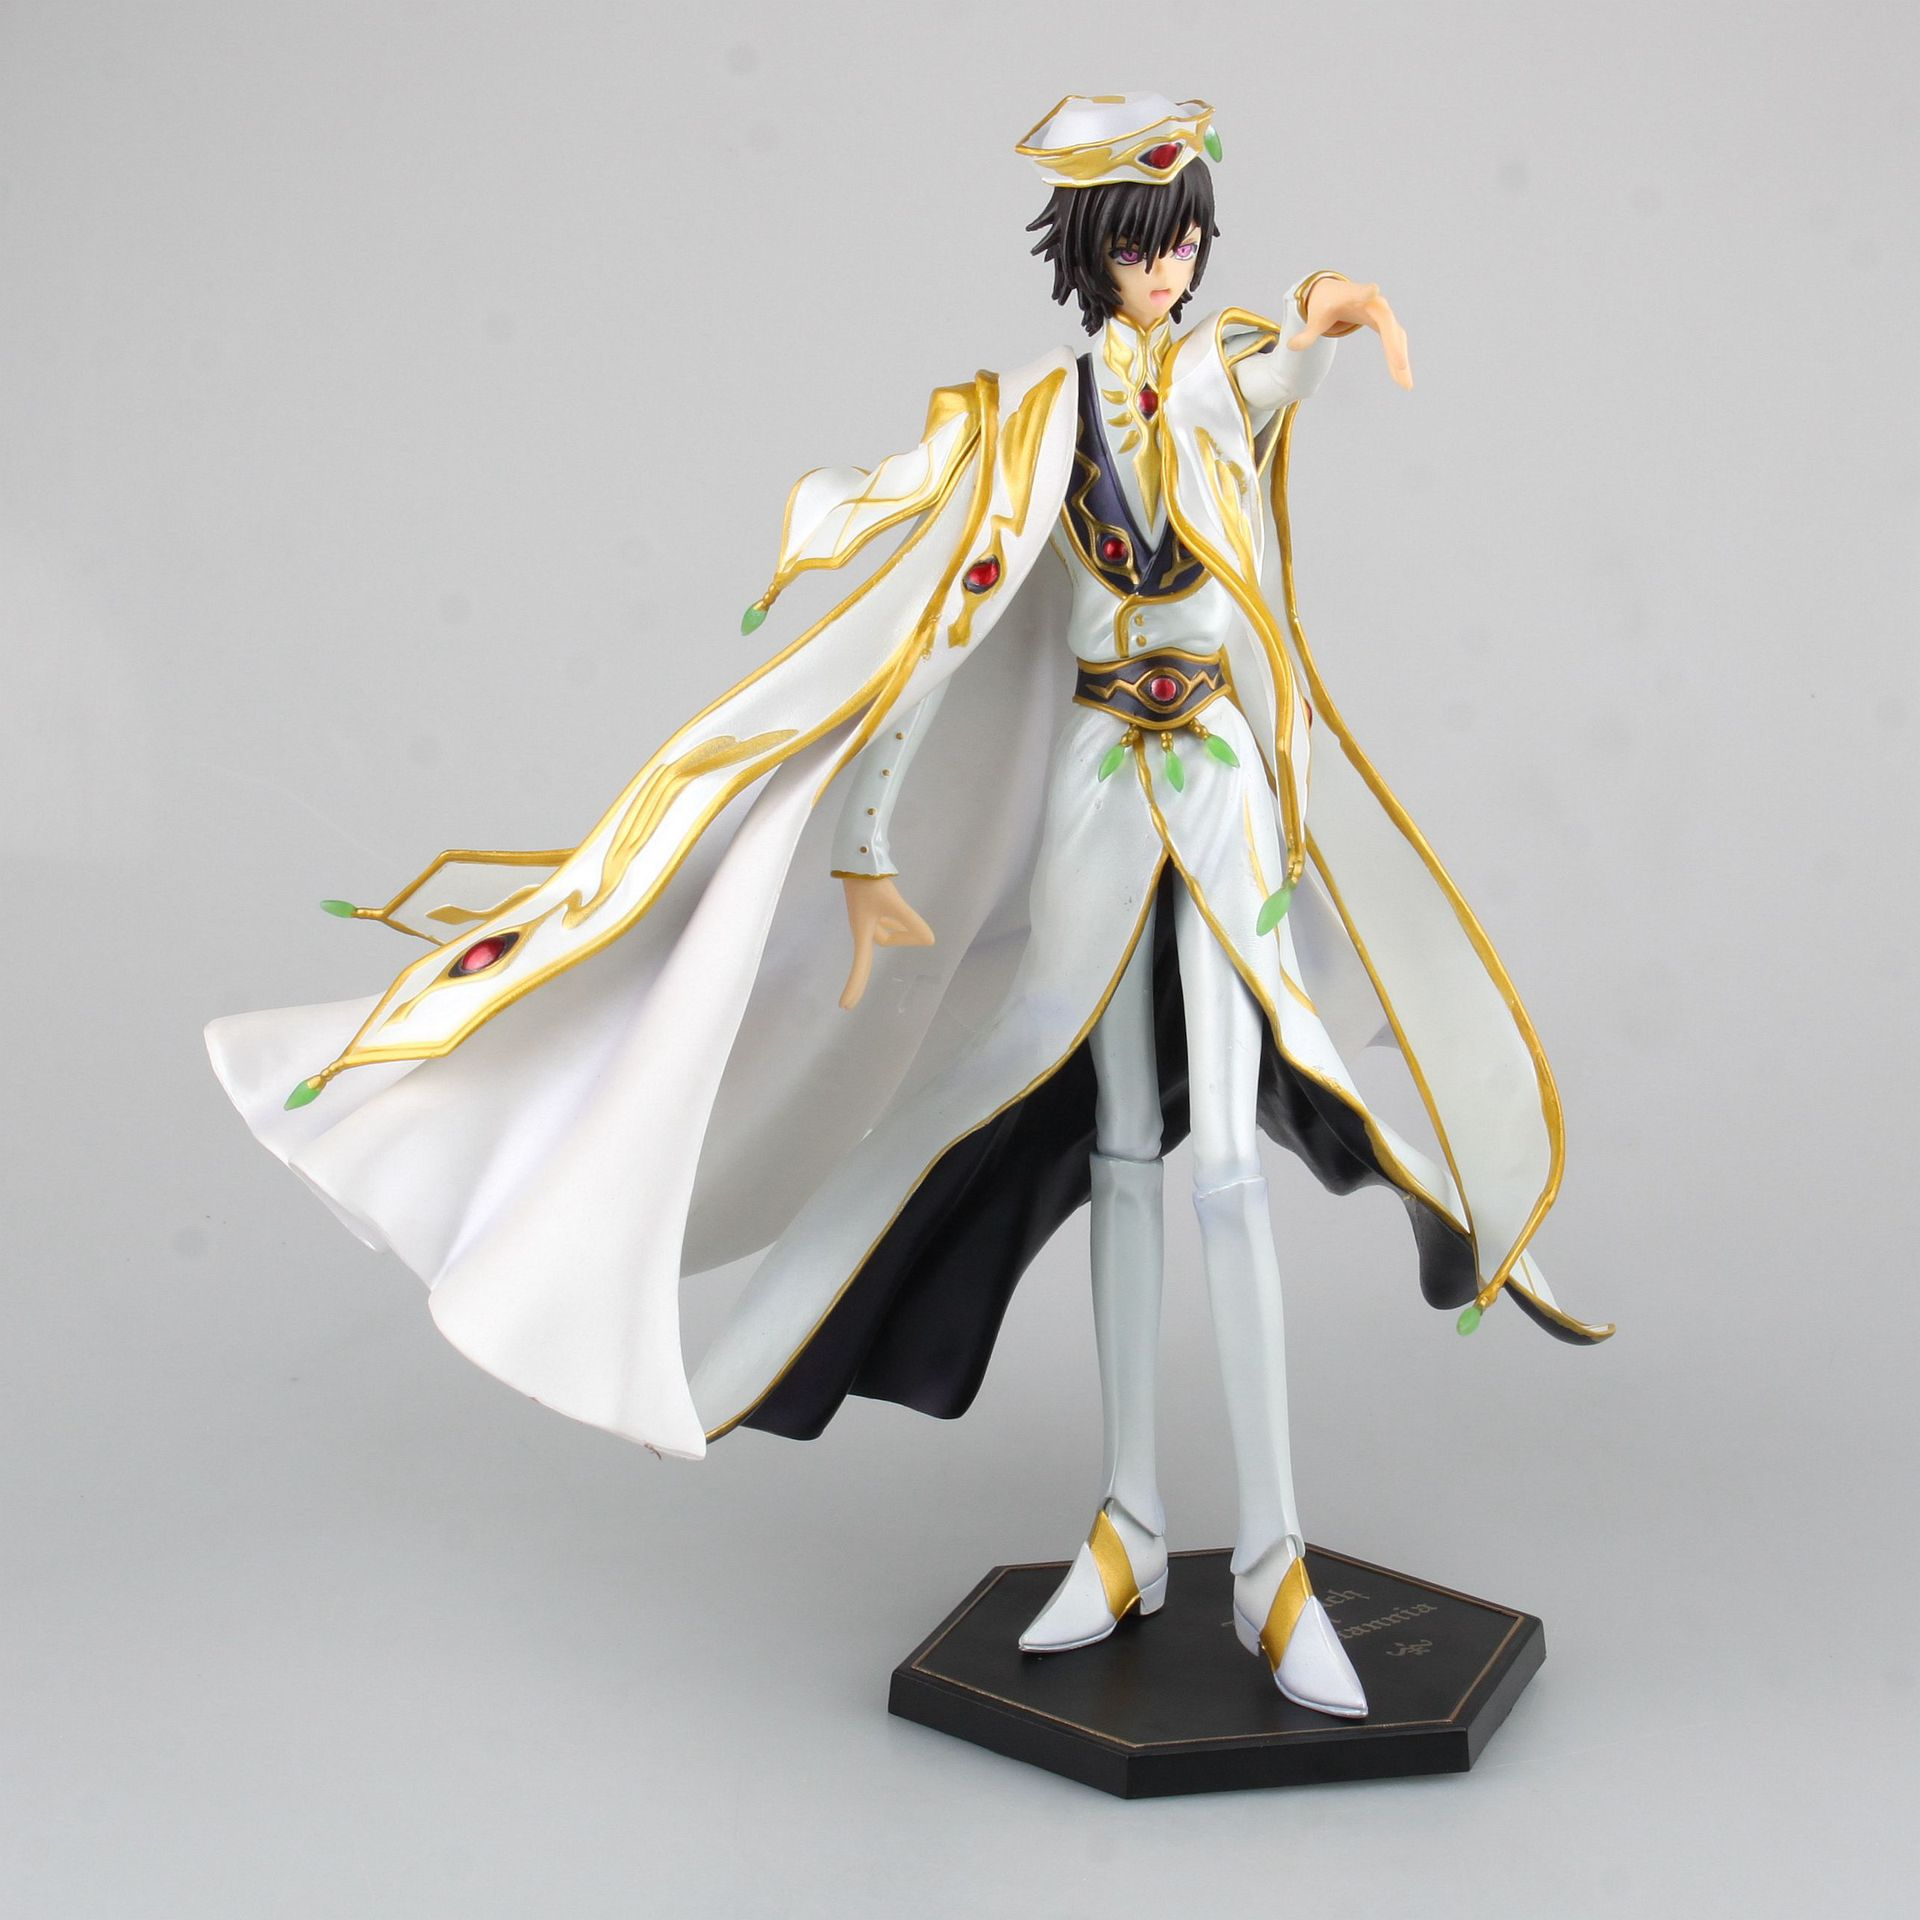 1pcs 24cm pvc Japanese anime figure Code Geass Lelouch Lamperouge action figure collectible model toys brinquedos цены